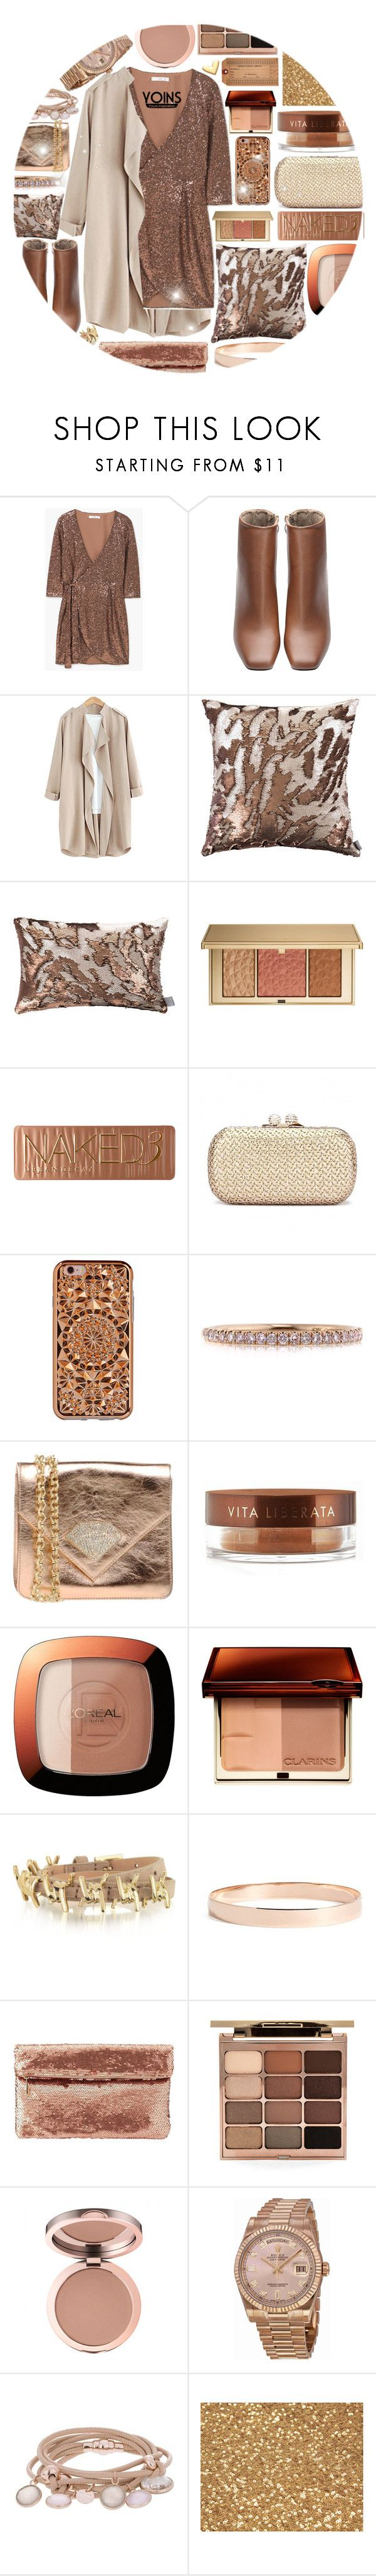 """yoins"" by konstadinagee ❤ liked on Polyvore featuring MANGO, Aviva Stanoff, Estée Lauder, Urban Decay, Felony Case, Mark Broumand, Argento Antico, Vita Liberata, L'Oréal Paris and Dsquared2"